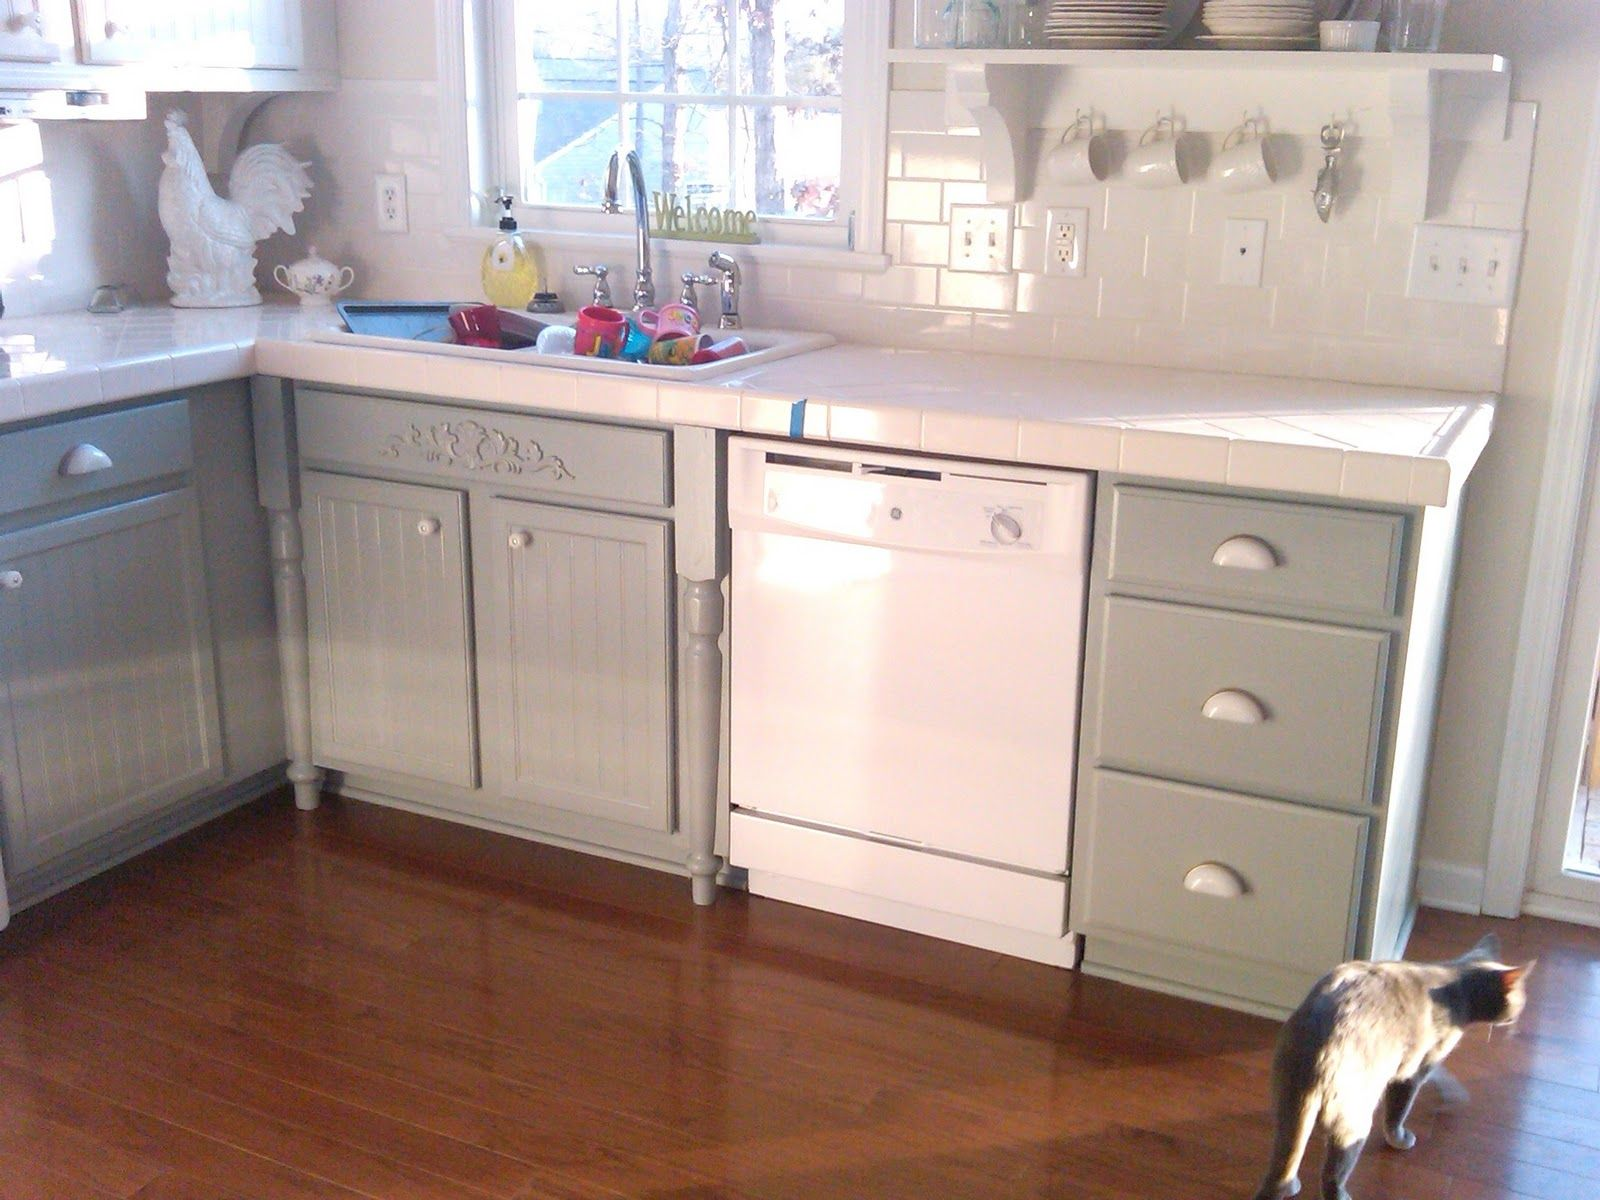 Remodelaholic blog archive painting oak cabinets white and gray